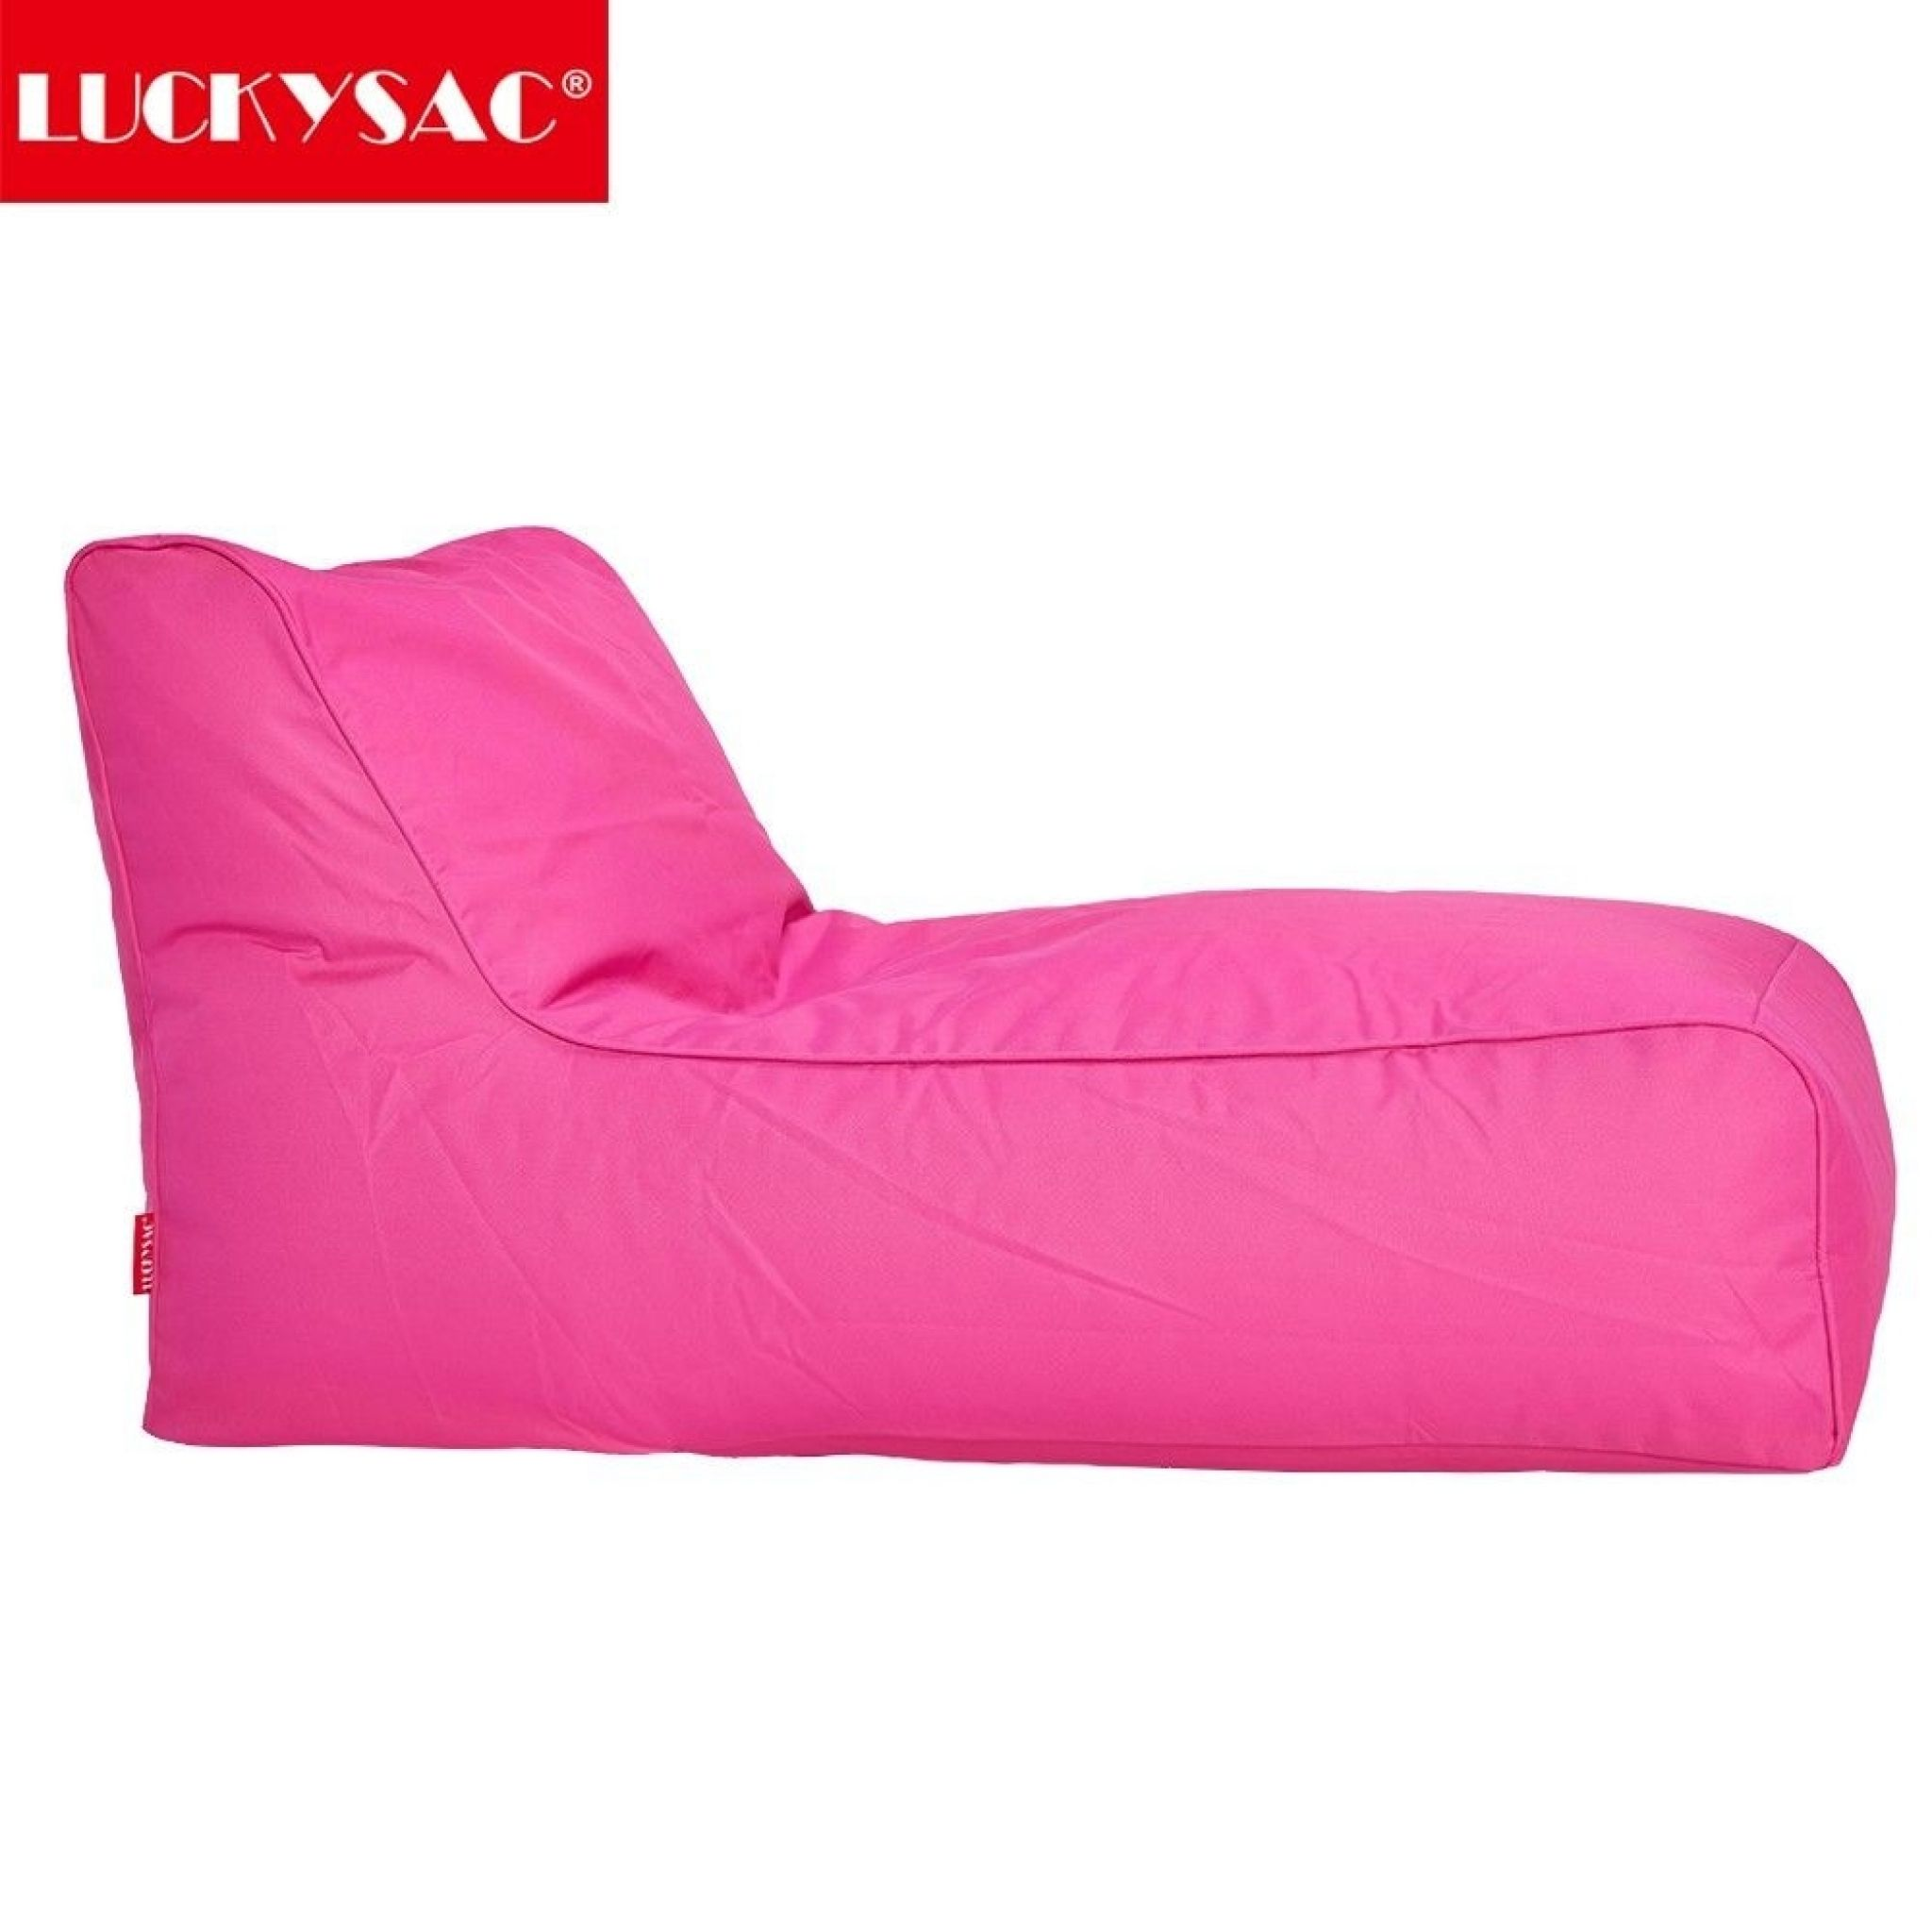 Outdoor Waterproof Bean Bags Furniture   Interior Paint Colors For 2017  Check More At Http: Part 4